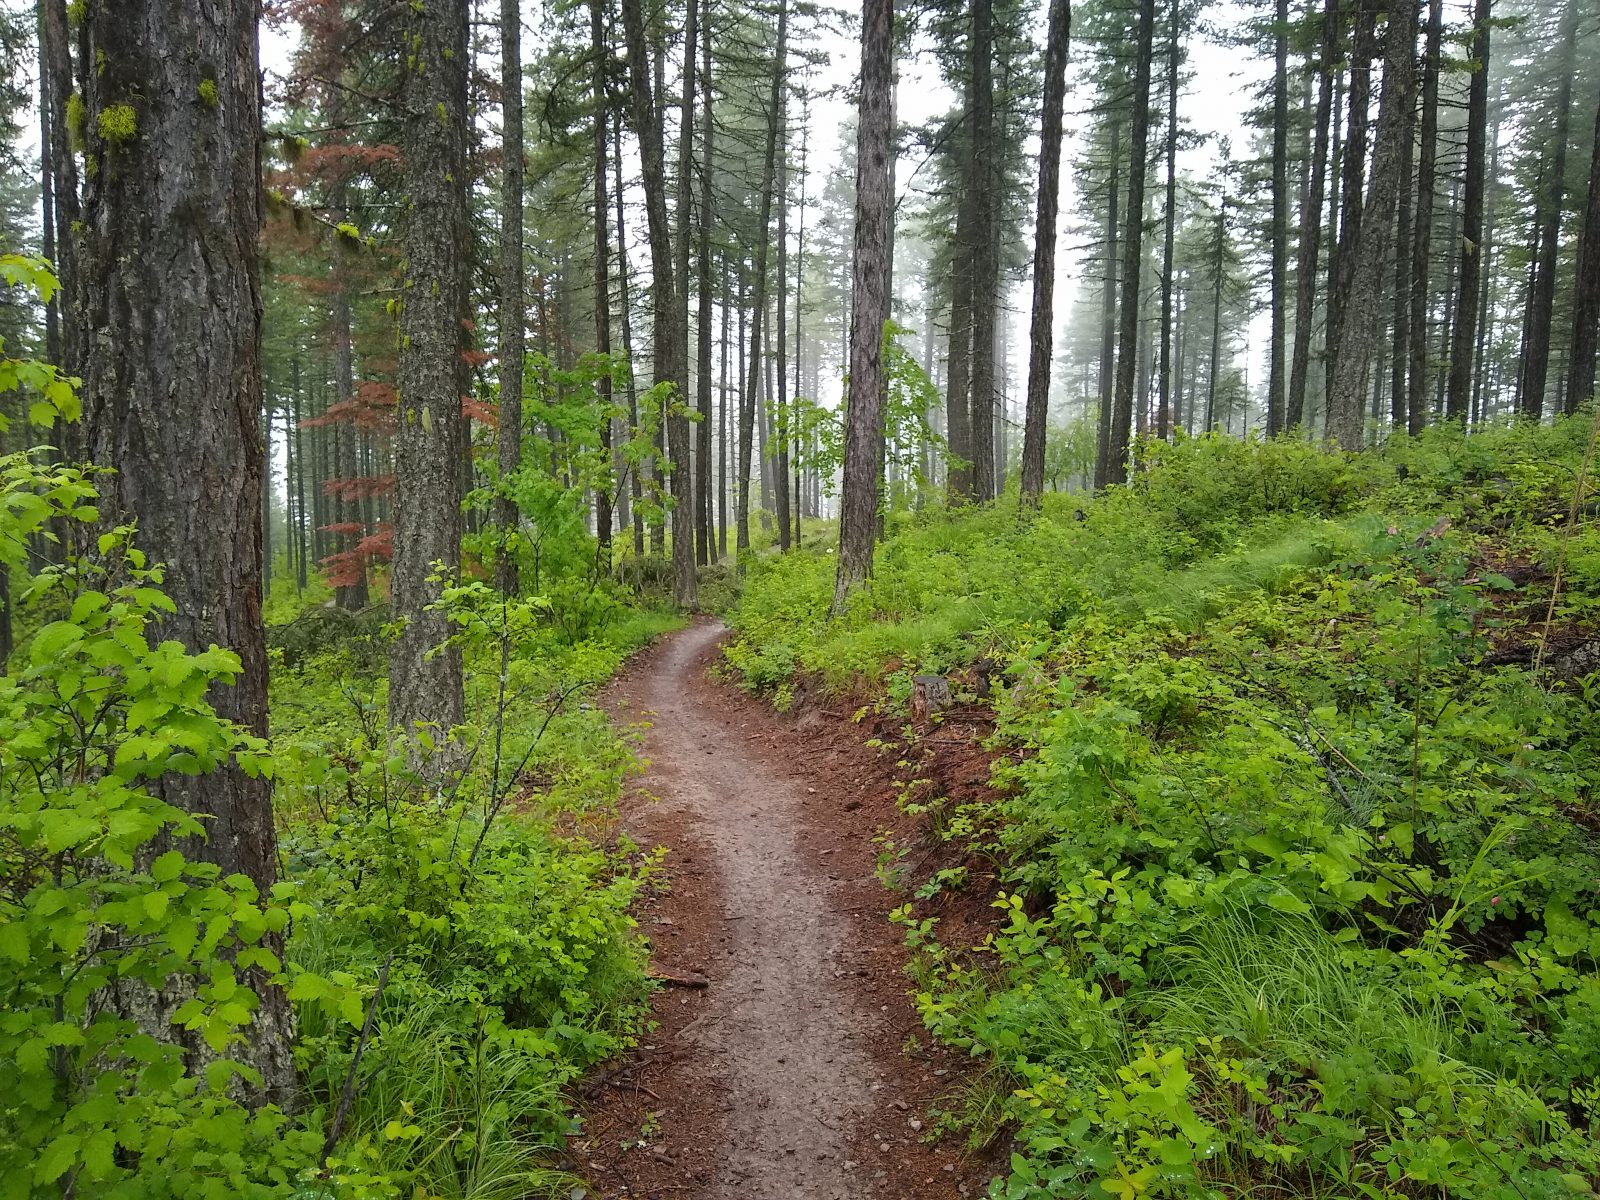 Whitefish Trail - June 21, 2020